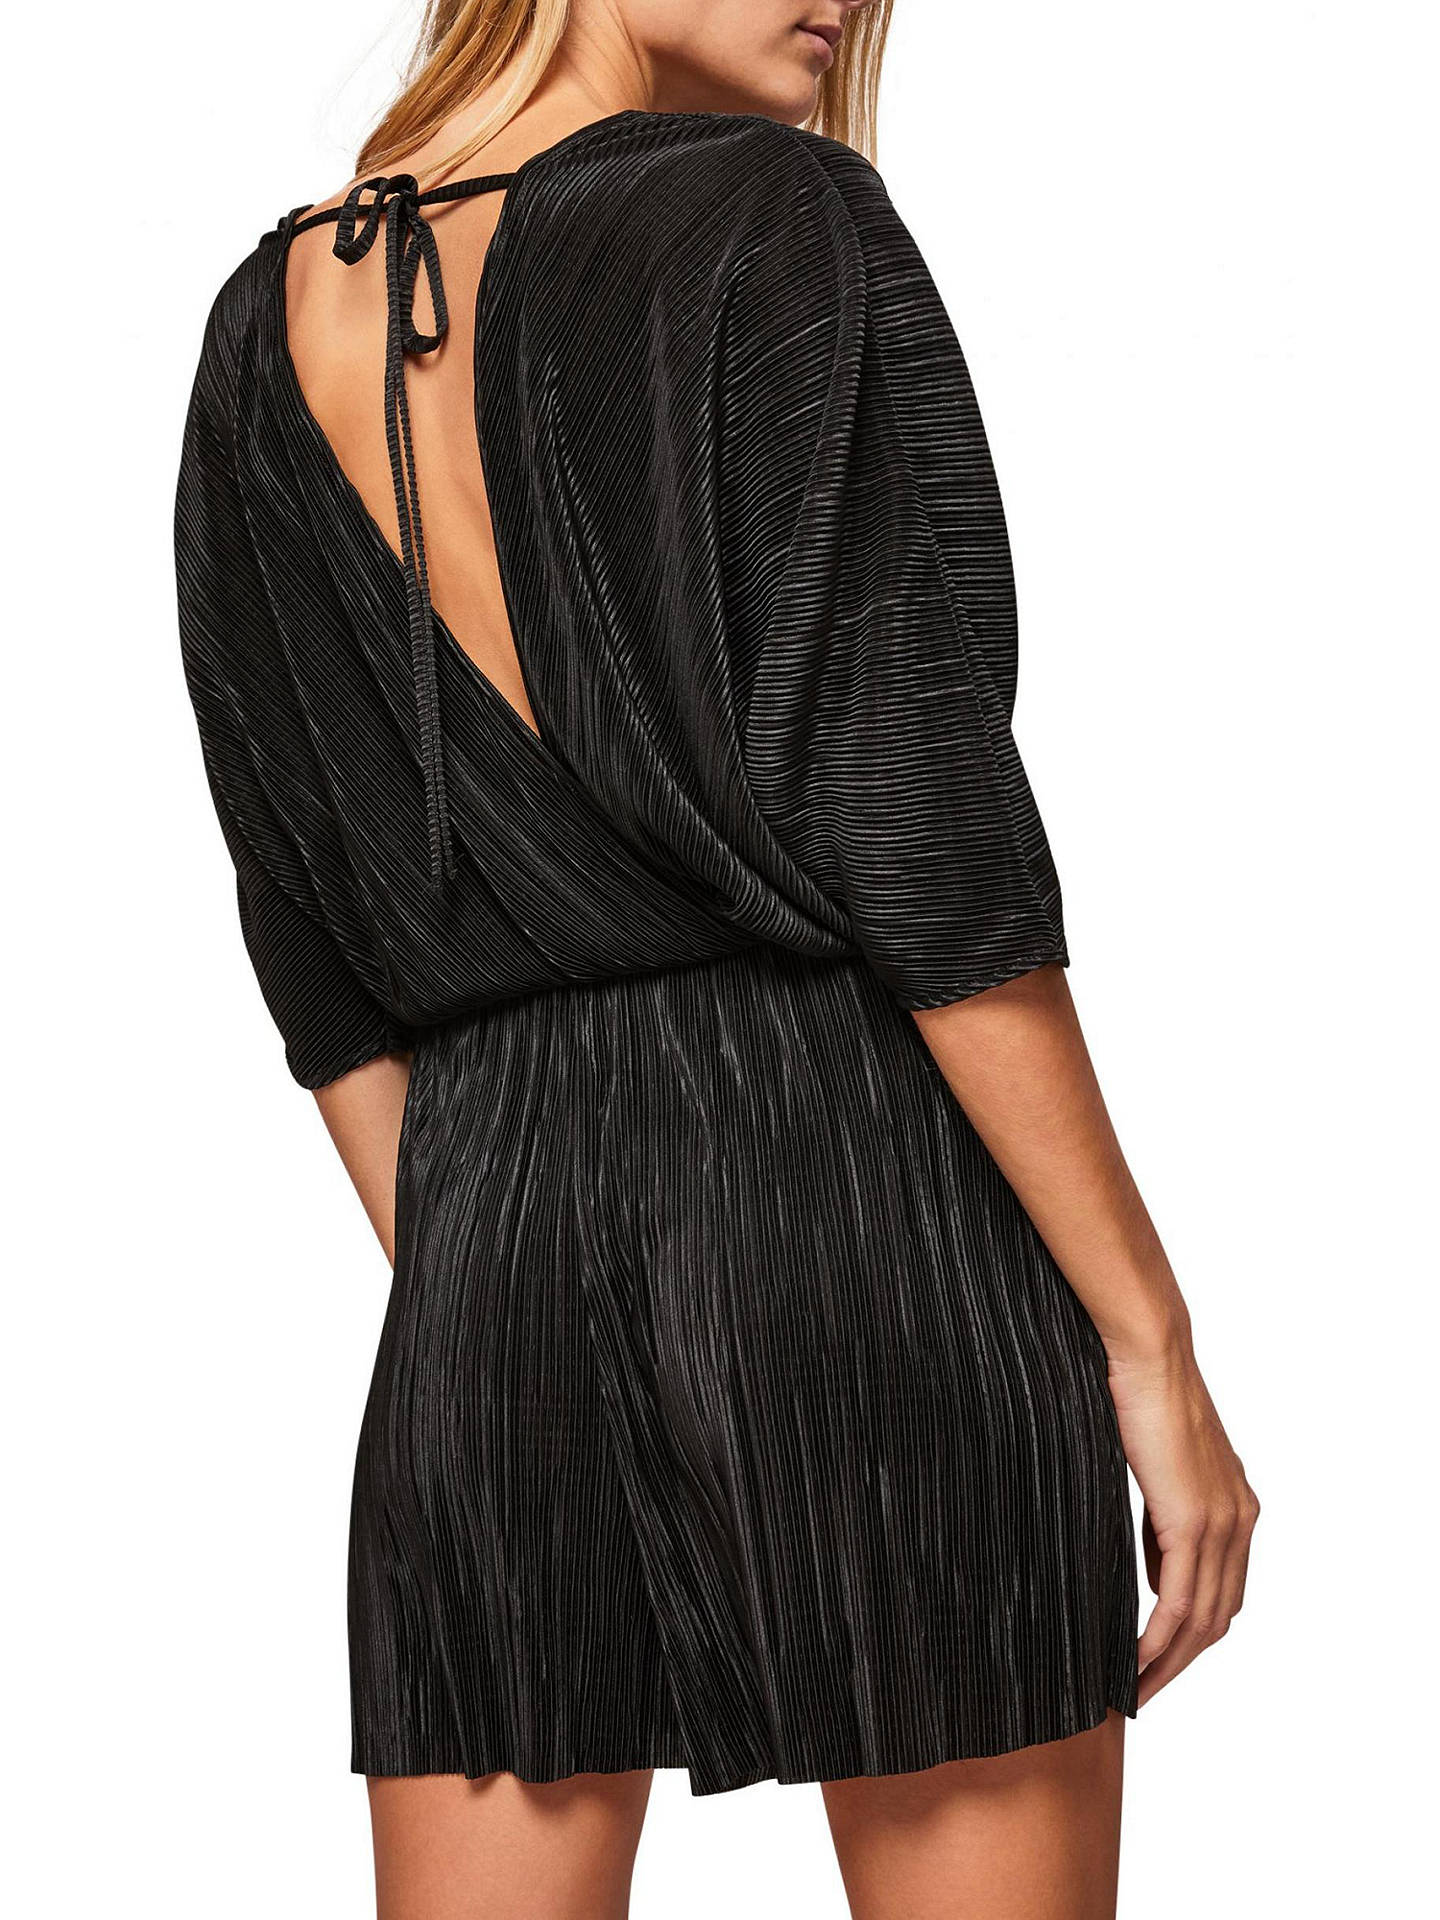 bright in luster great deals on fashion new arrivals Miss Selfridge Plisse Playsuit, Black at John Lewis & Partners